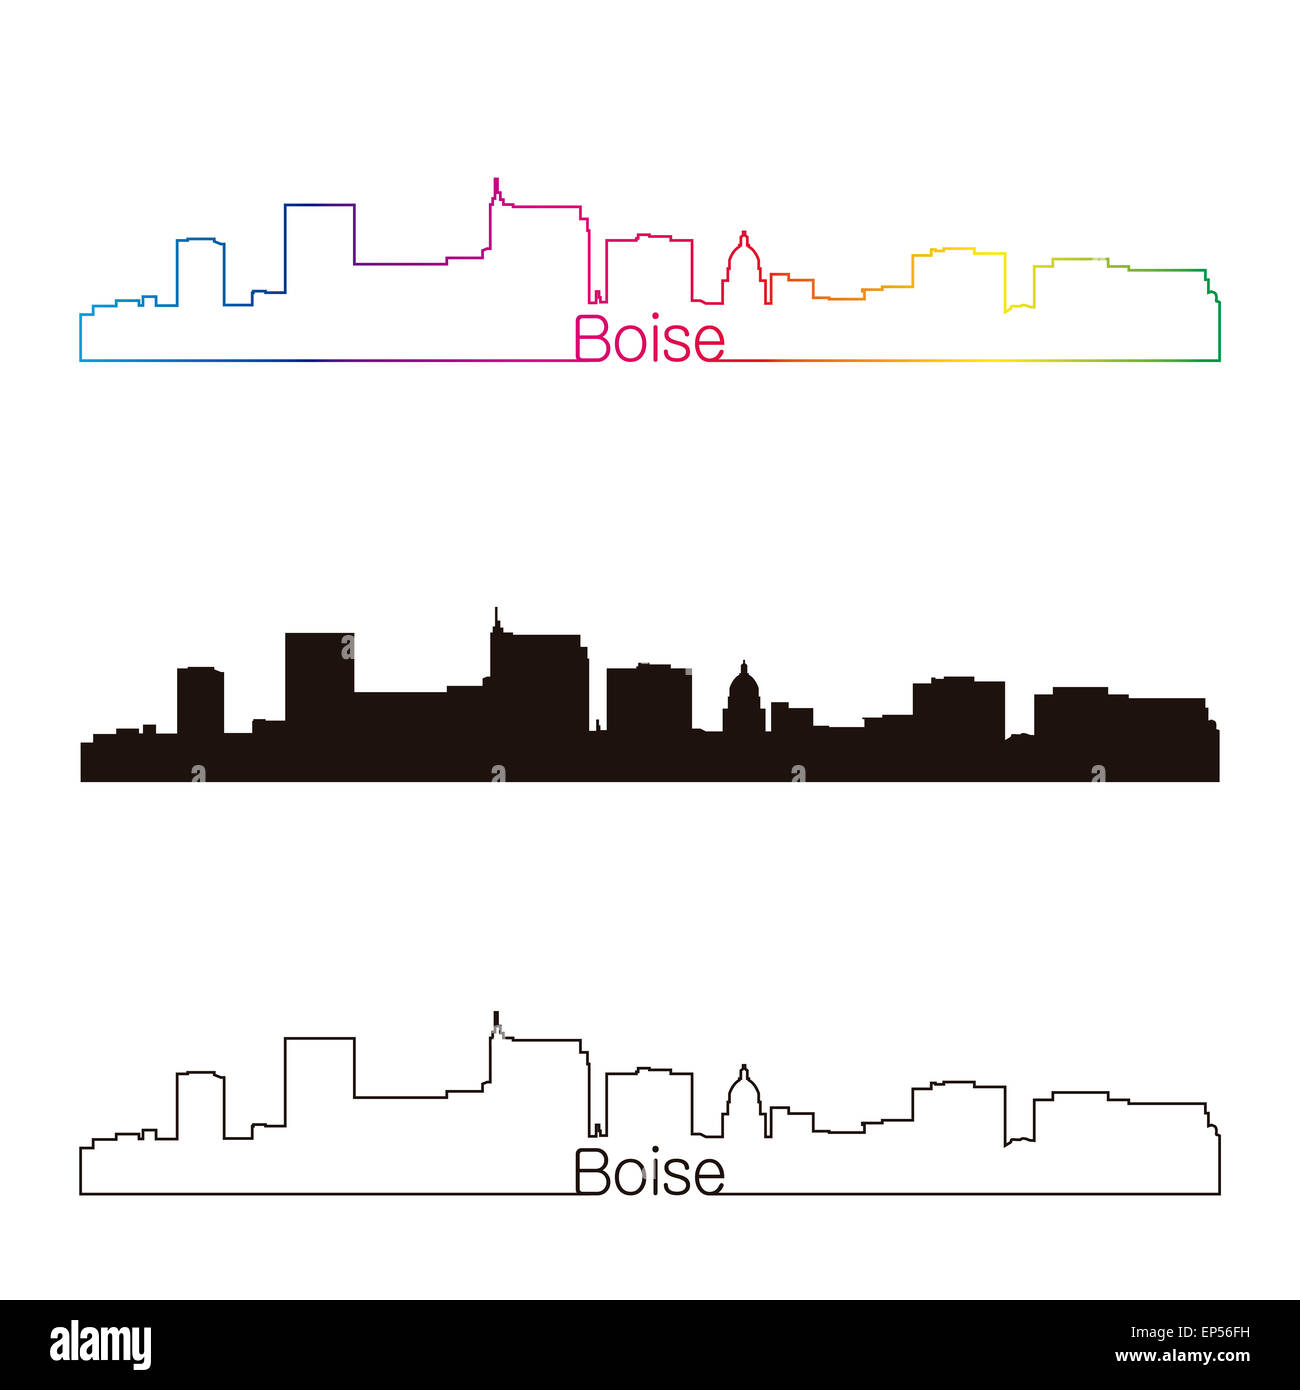 Boise skyline linear style with rainbow - Stock Image